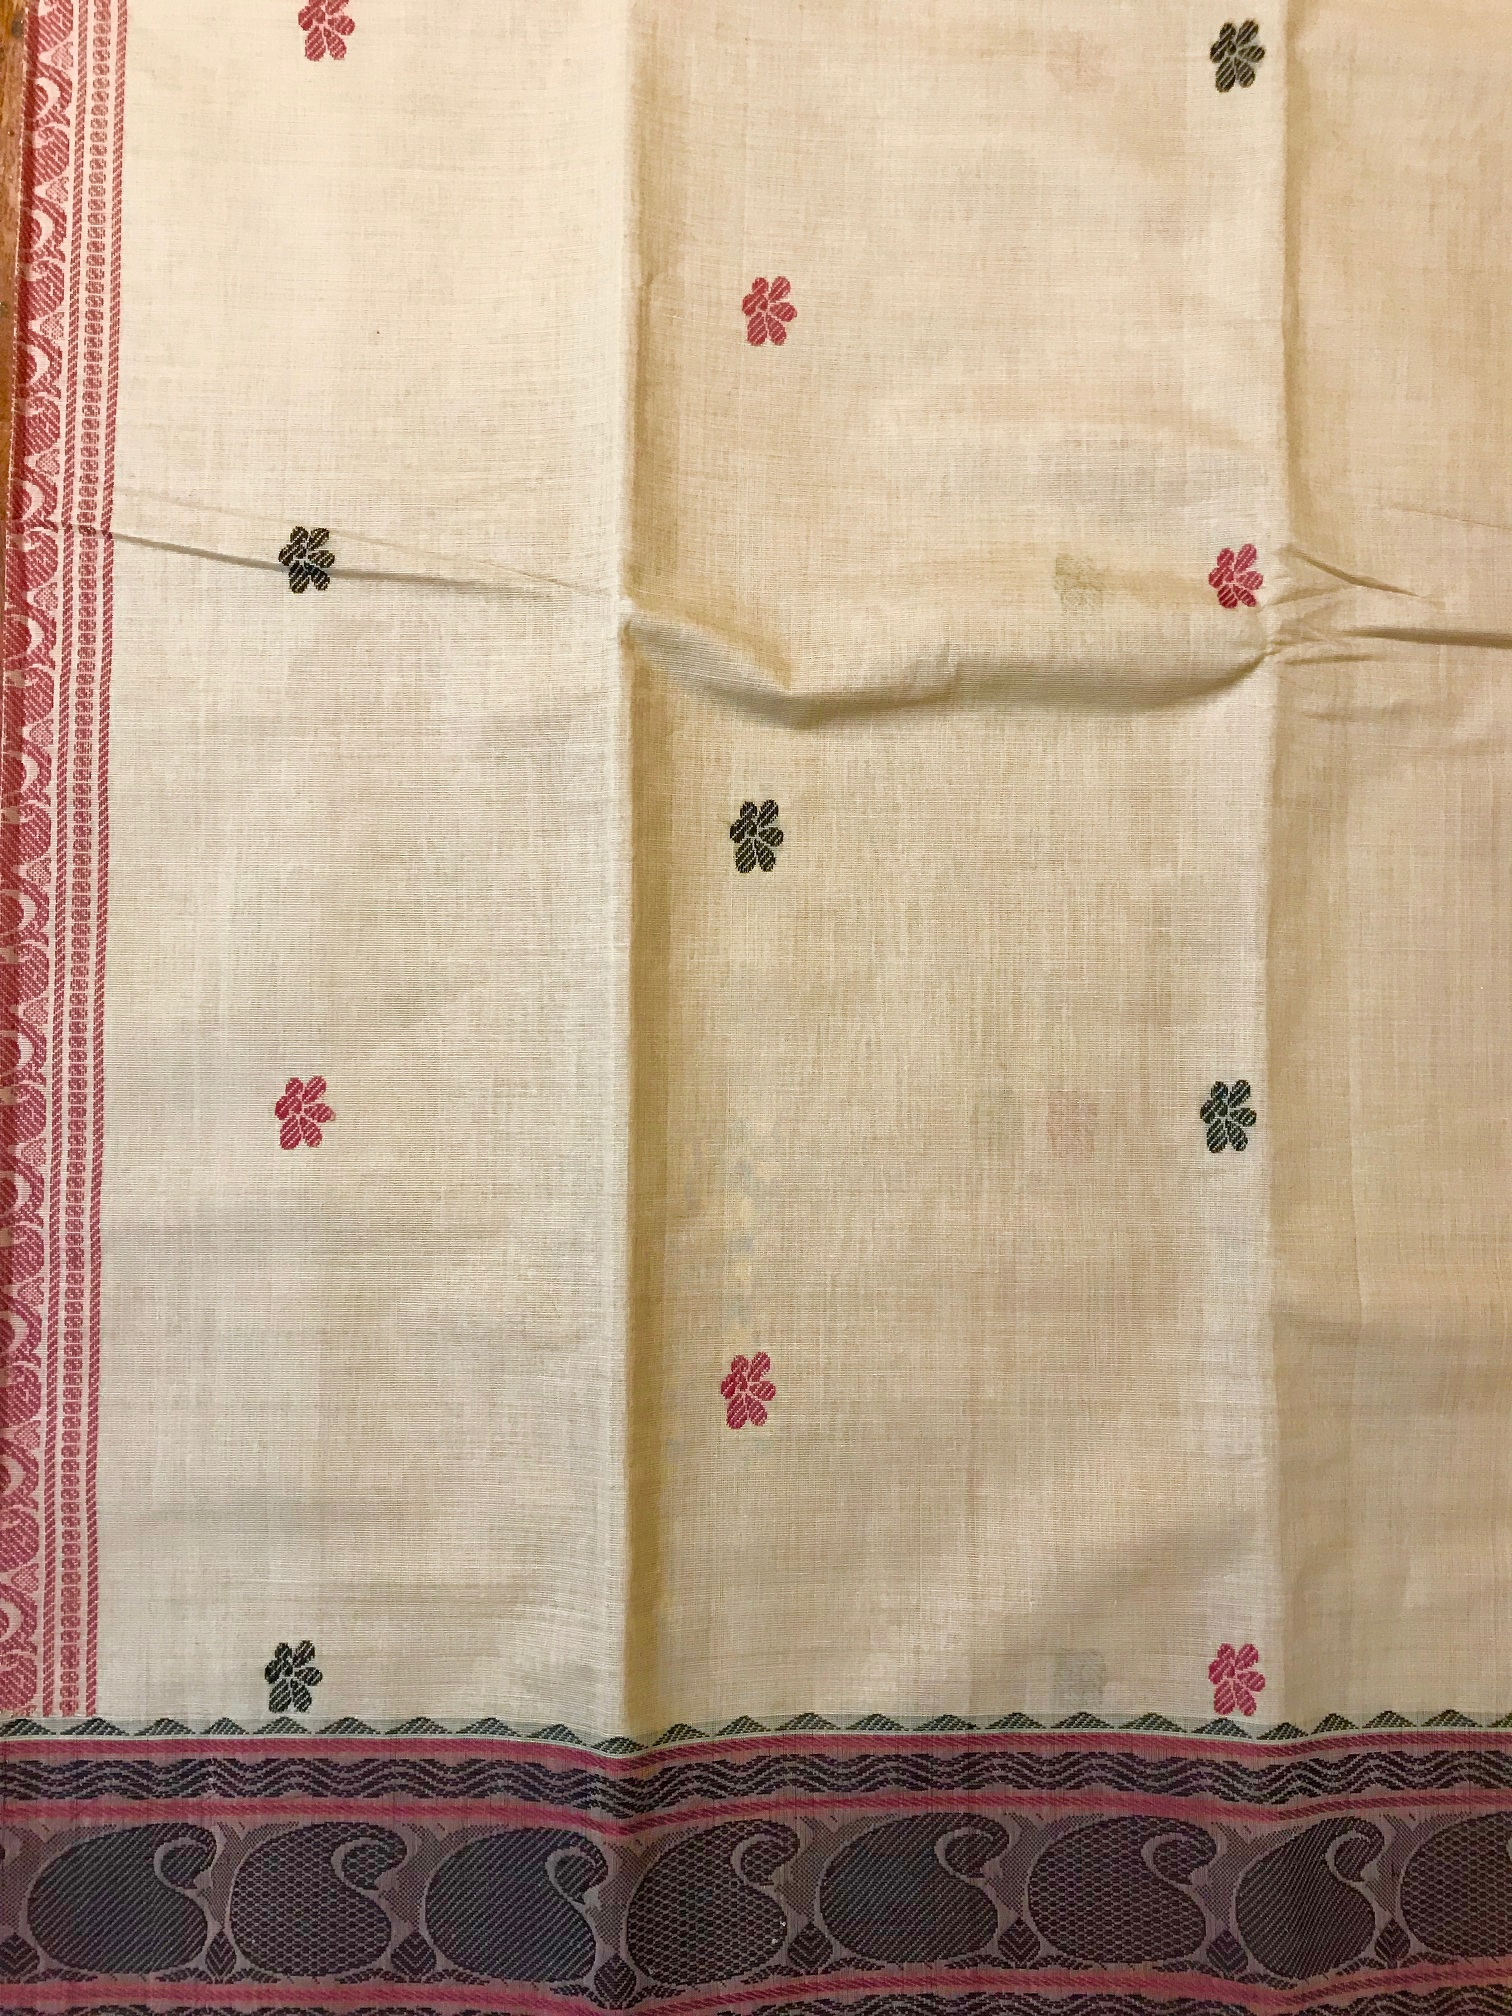 Beige and Maroon Kanchi Cotton Saree (1003)